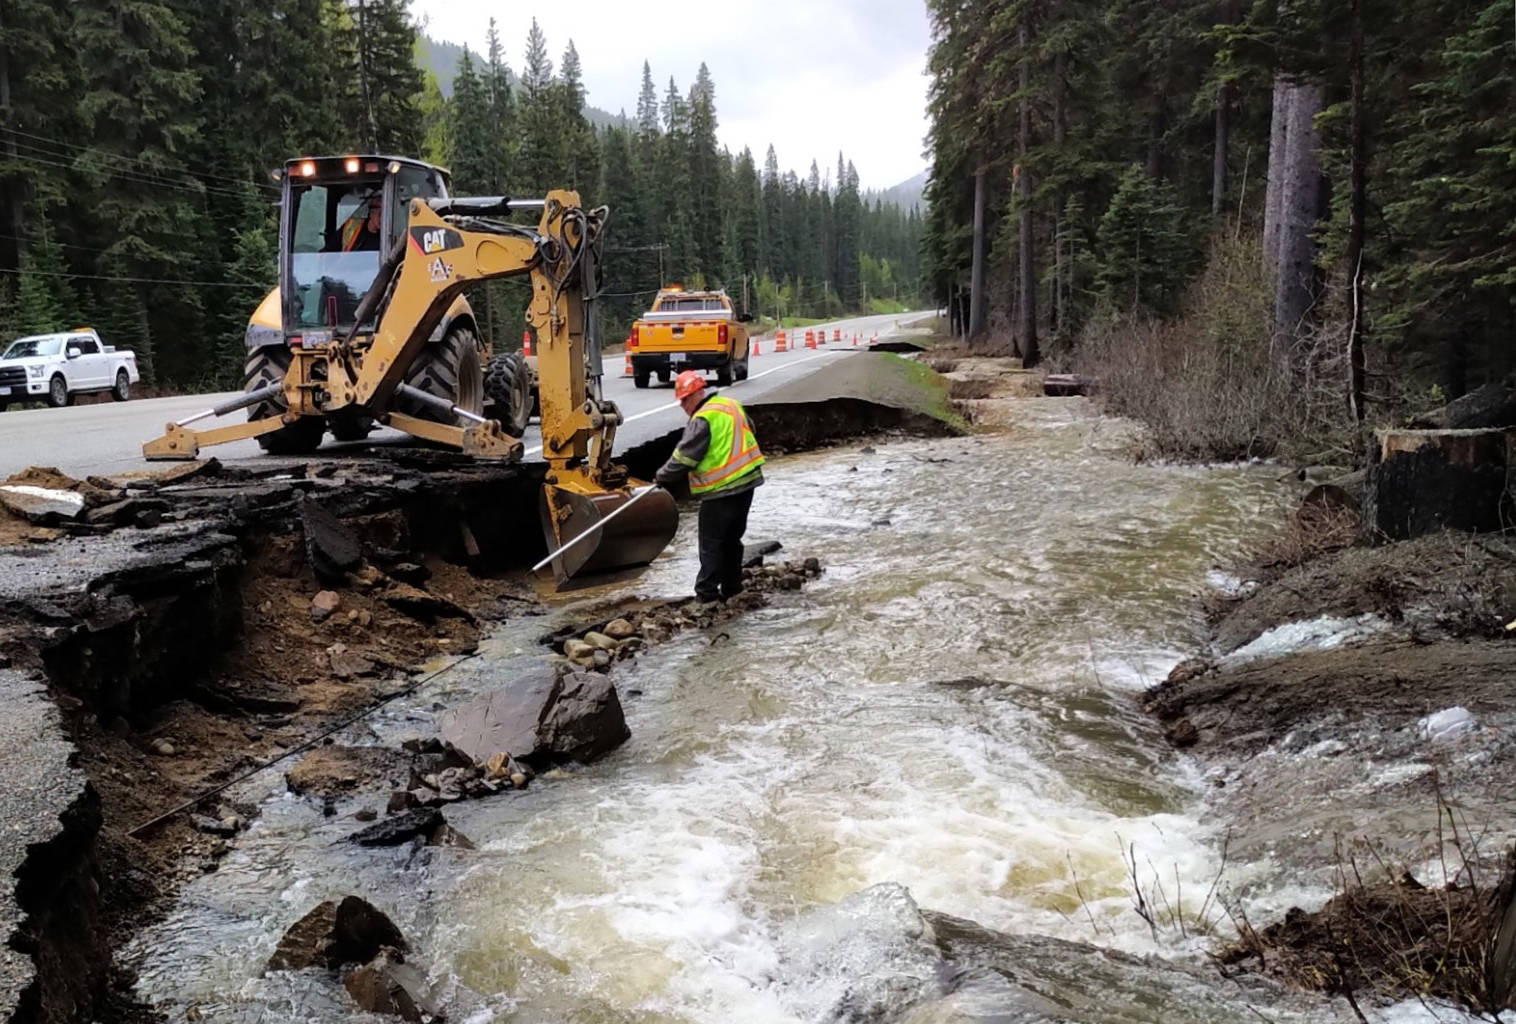 Emil Anderson Maintenance Co. Ltd. crews are on the scene of a washout near the west entrance to Manning Park. (@EAMOperations Twitter photo)